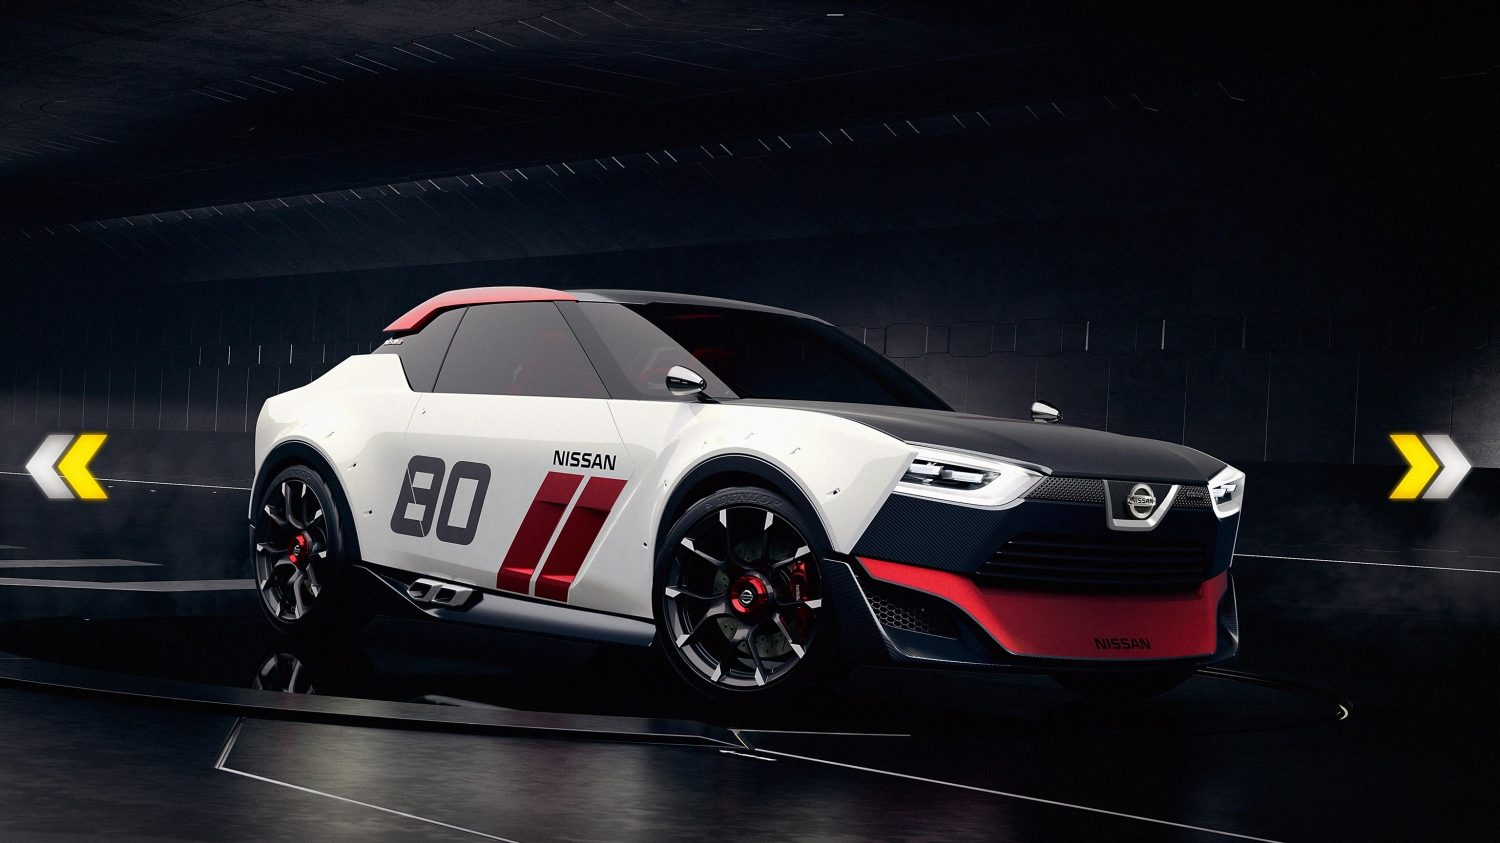 Experience Nissan - Concept car - IDx NISMO - side view